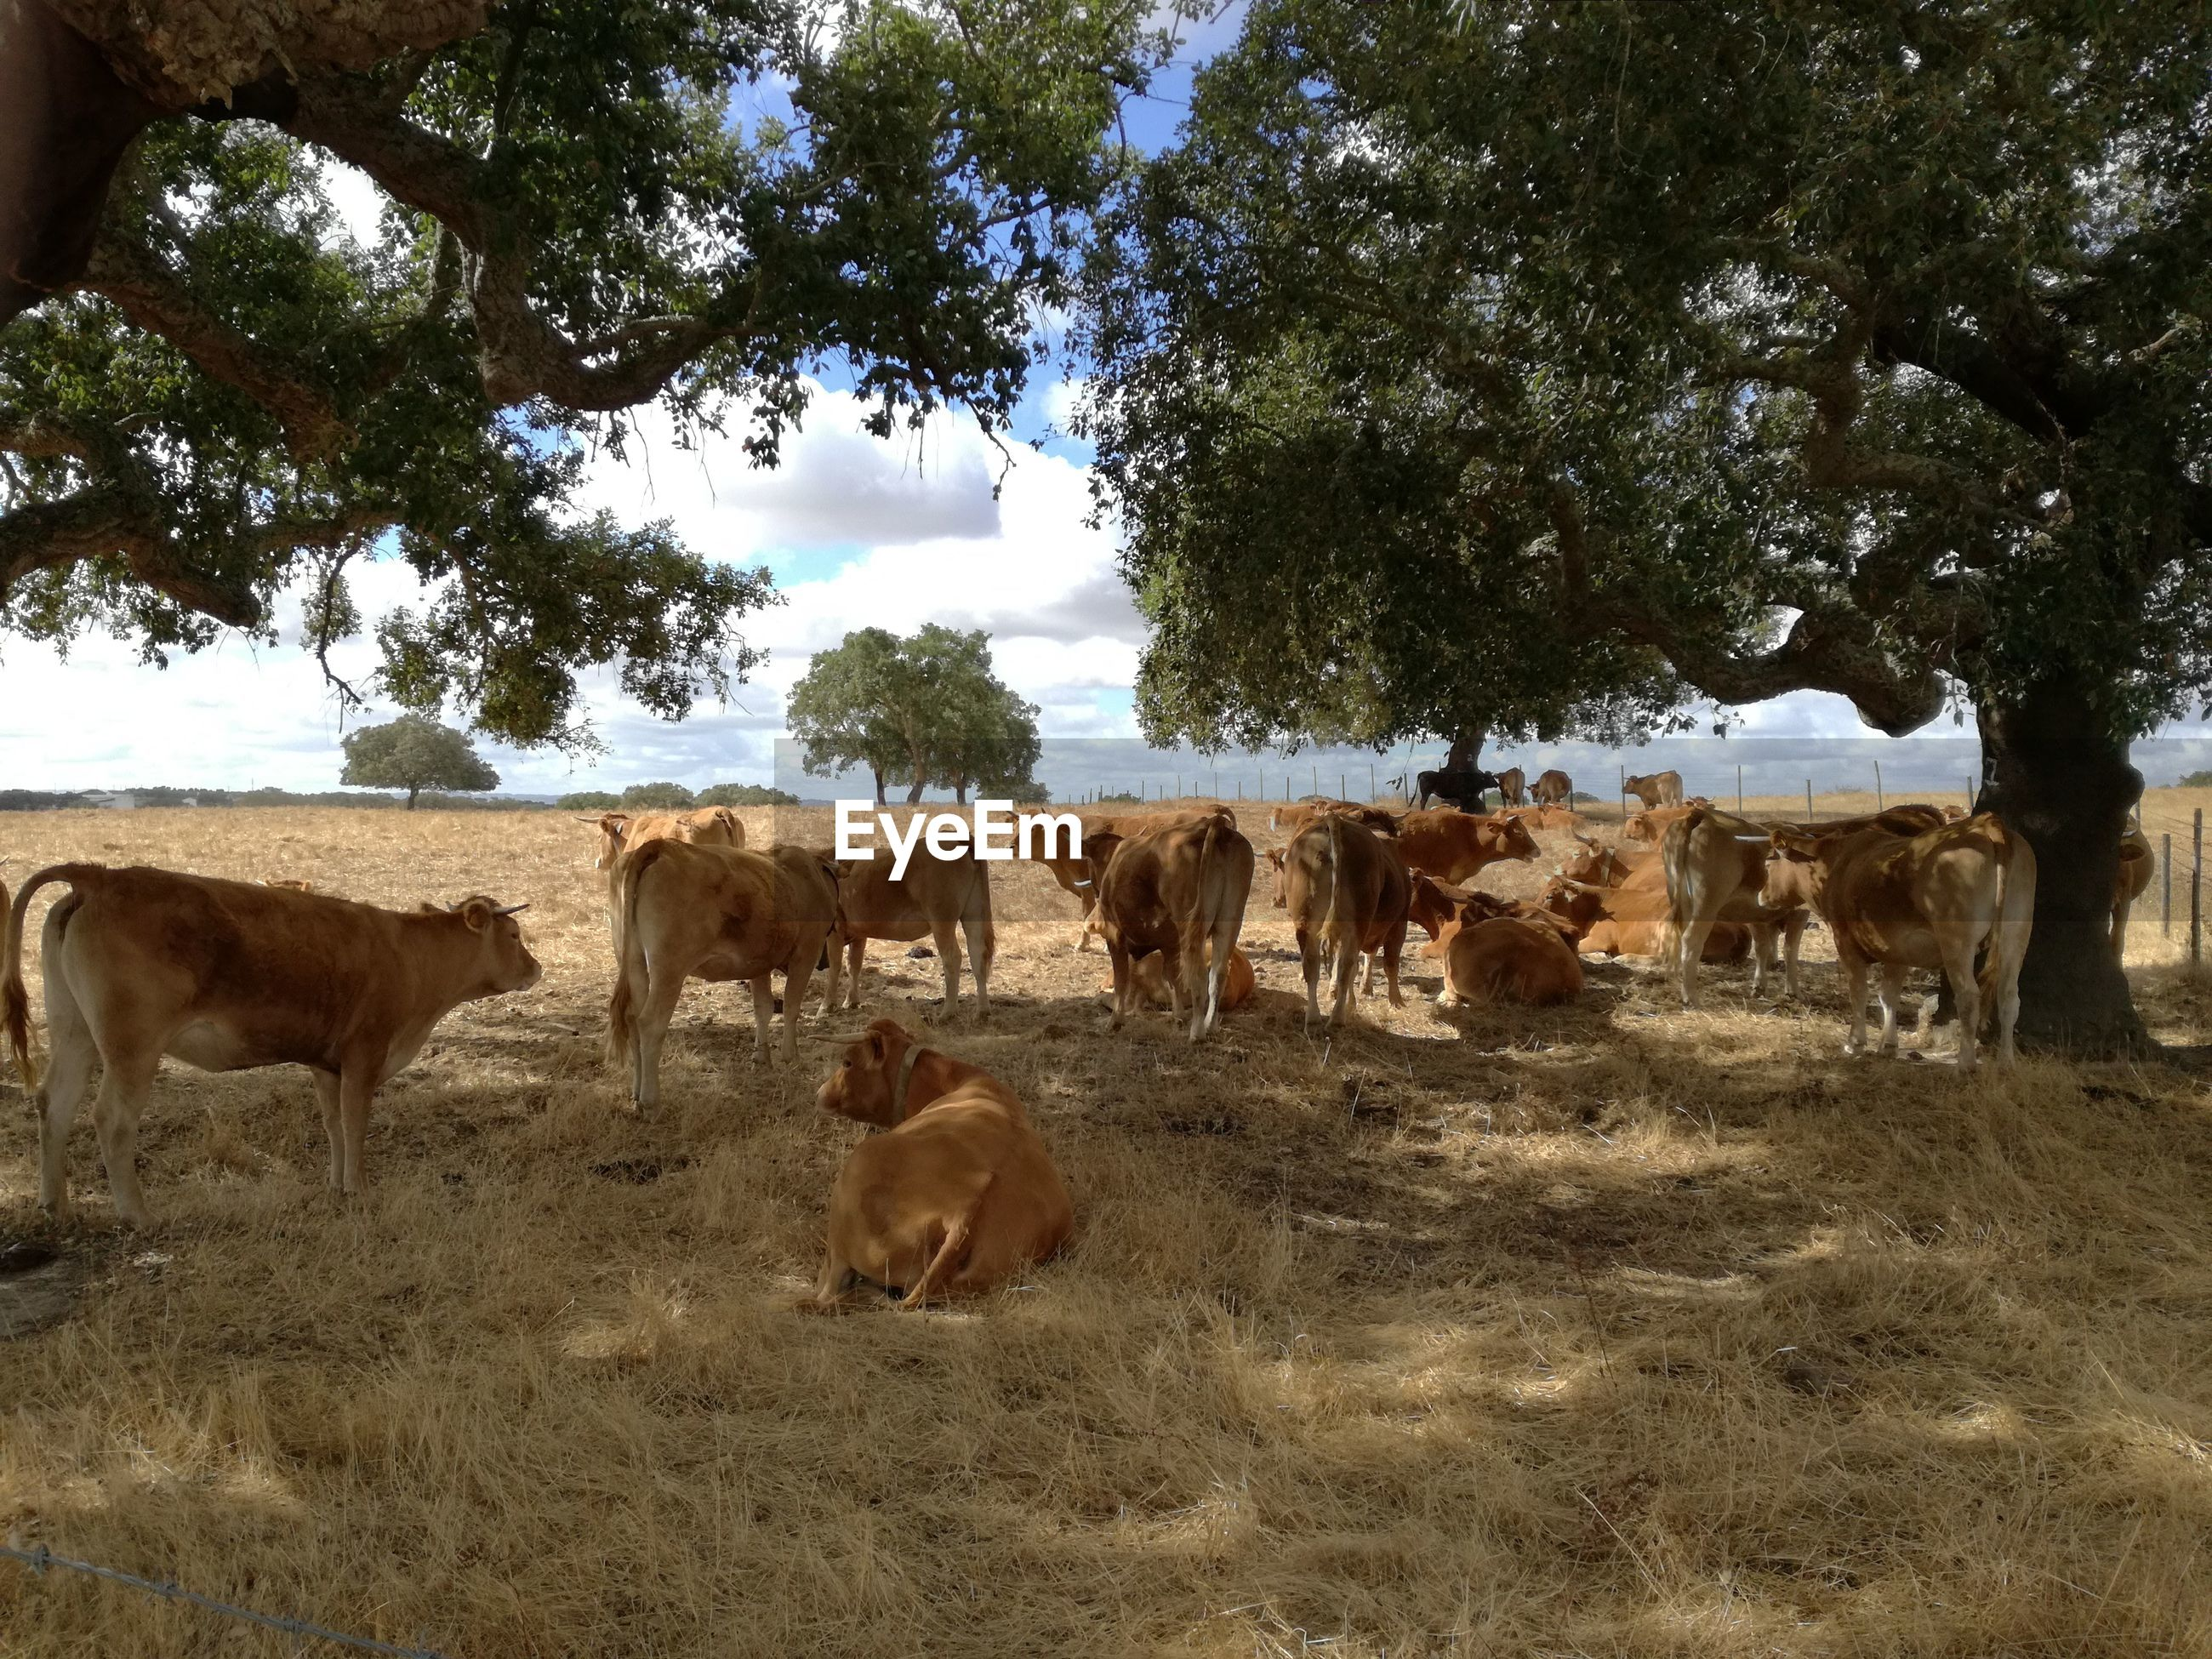 Cattle grazing on field against trees